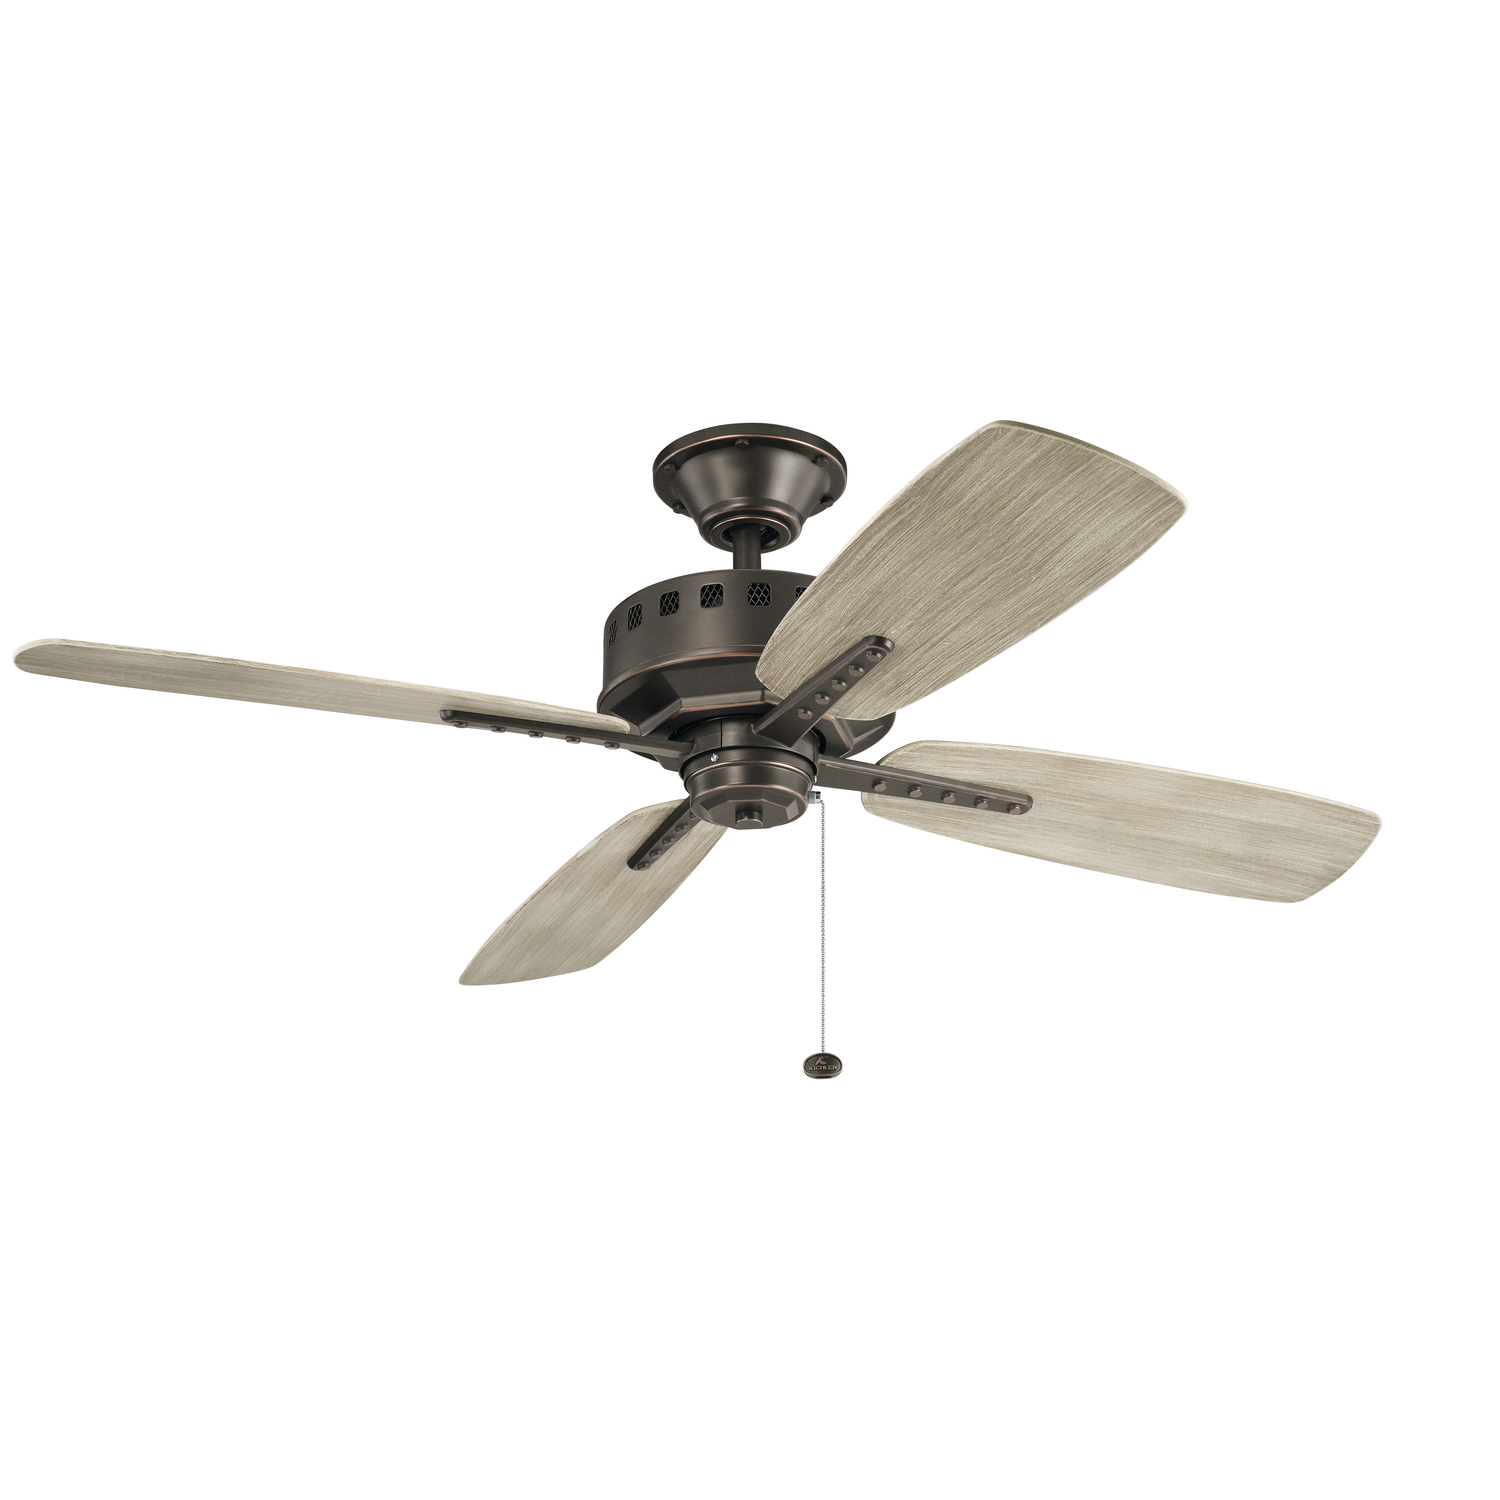 52 inchCeiling Fan from the Eads collection by Kichler 310152OZ